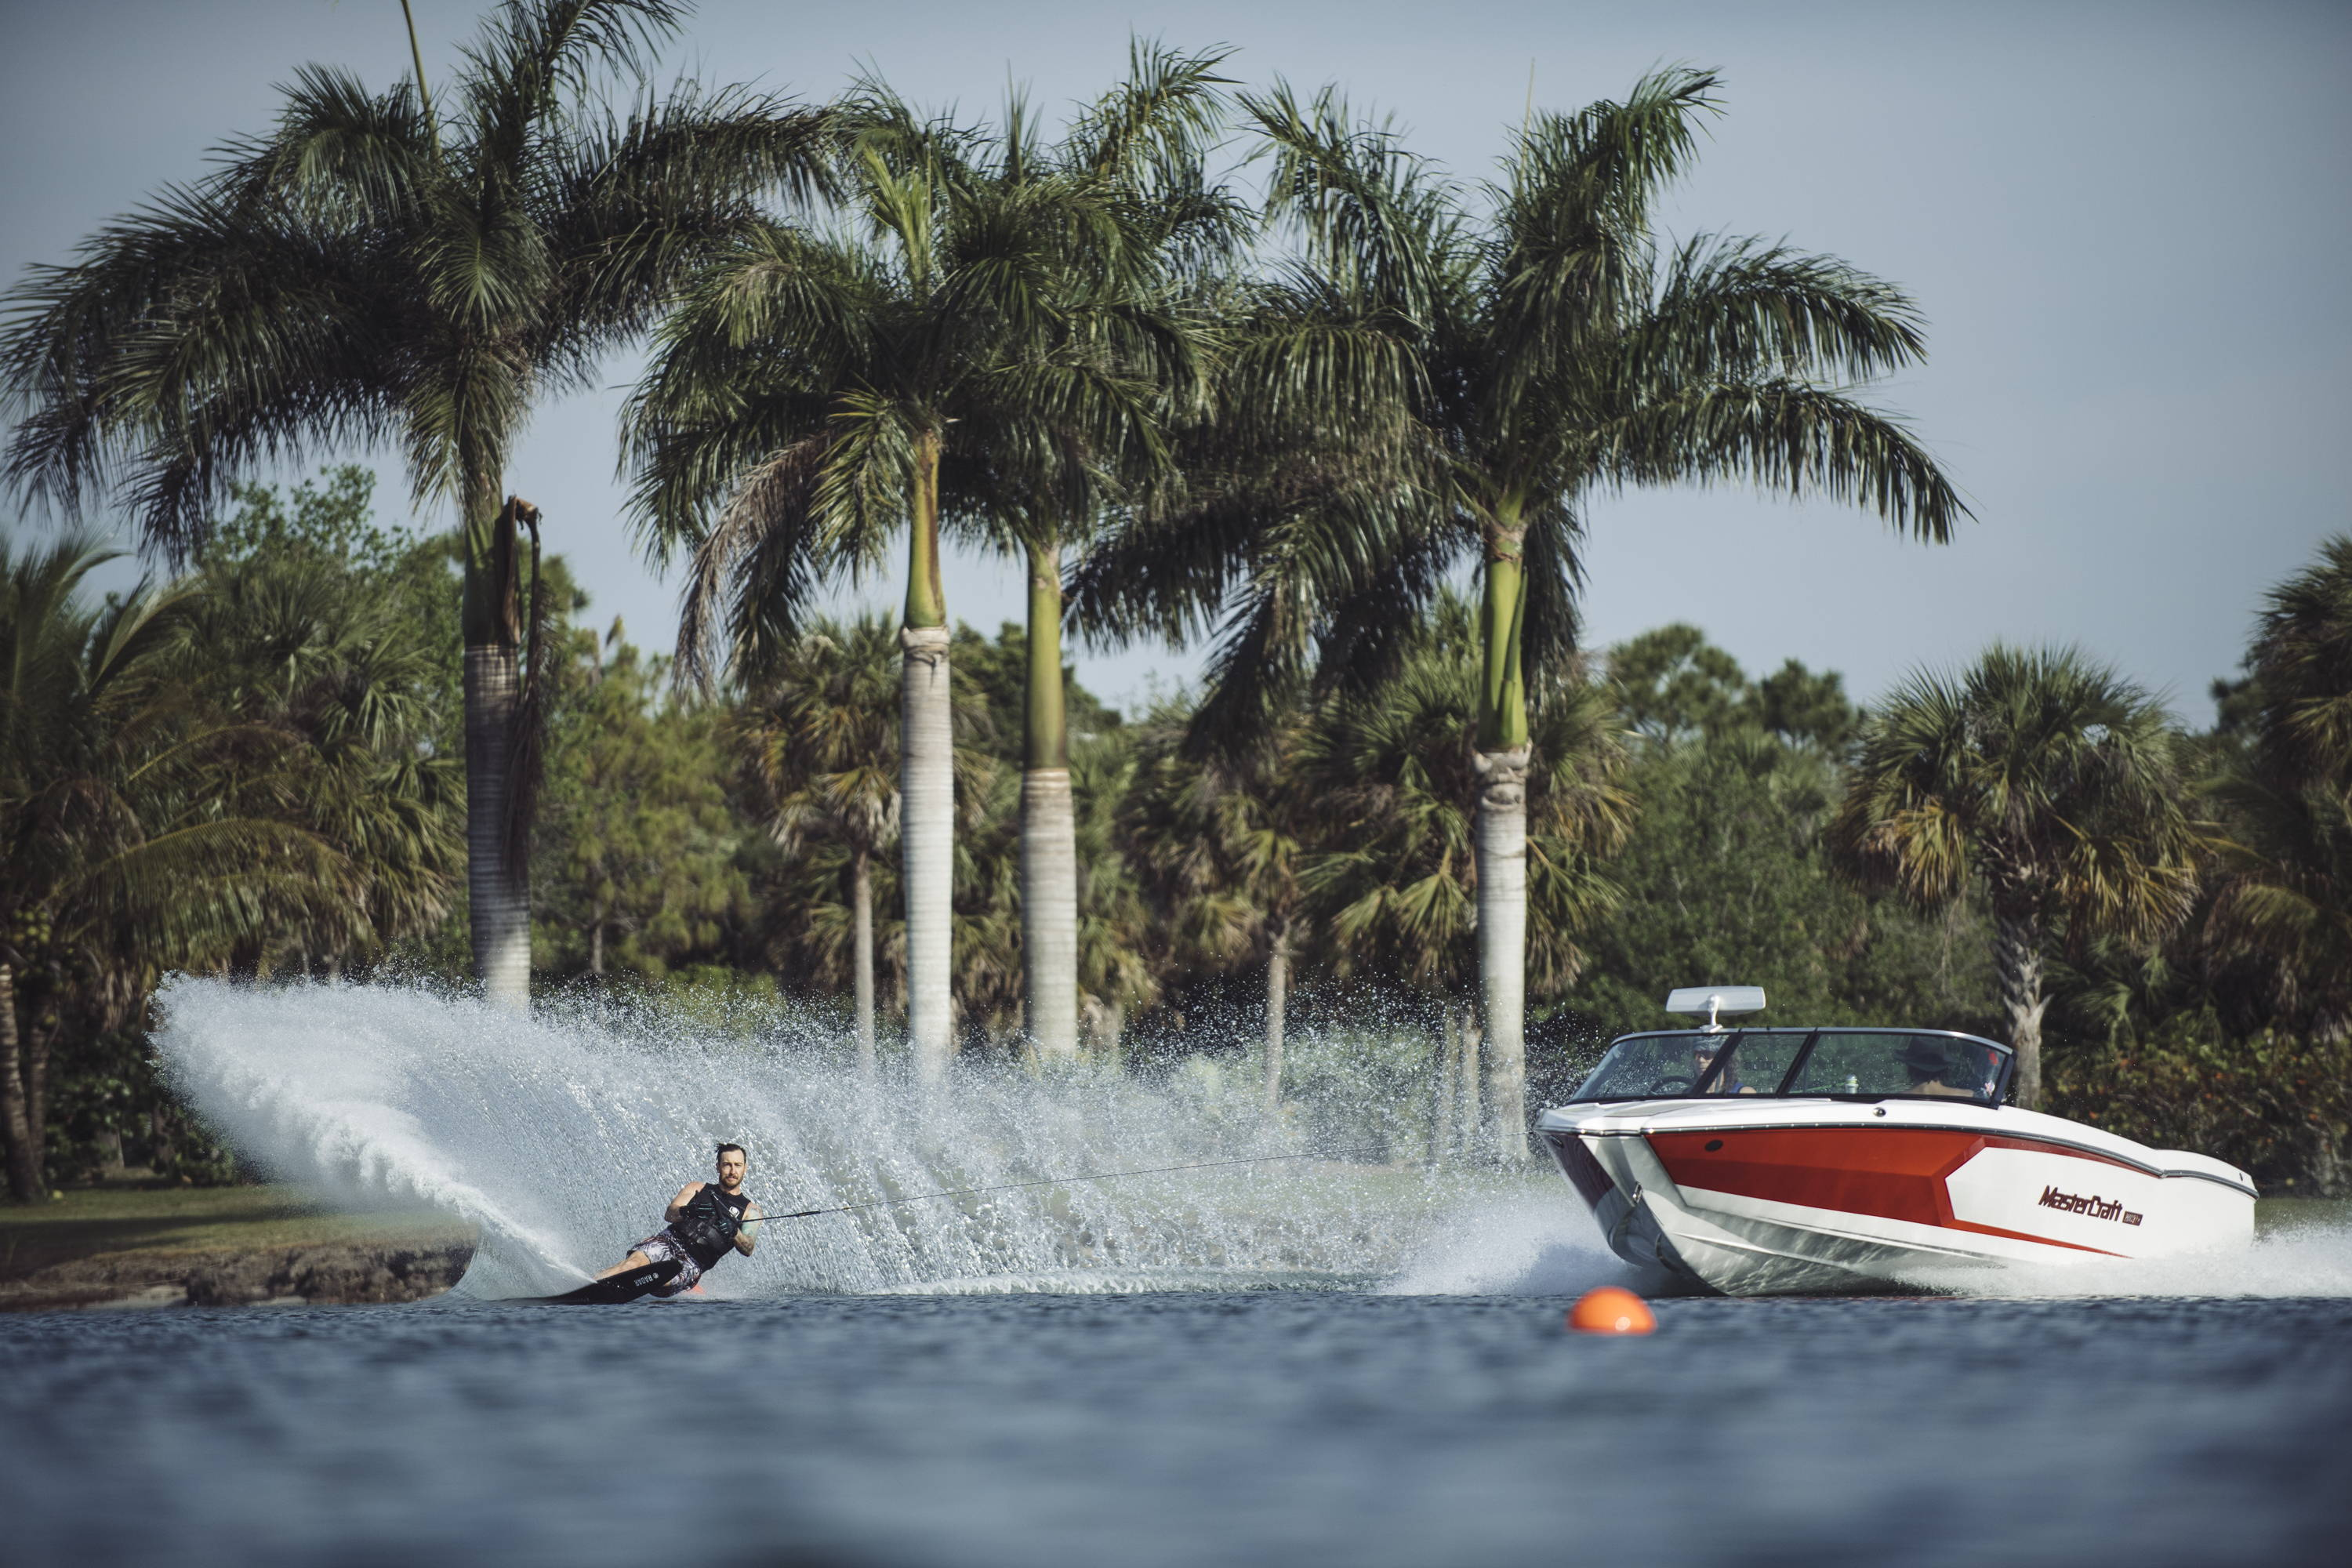 Waterskiing, QLD waterspouts, where to waterski, best places to waterski in Queensland